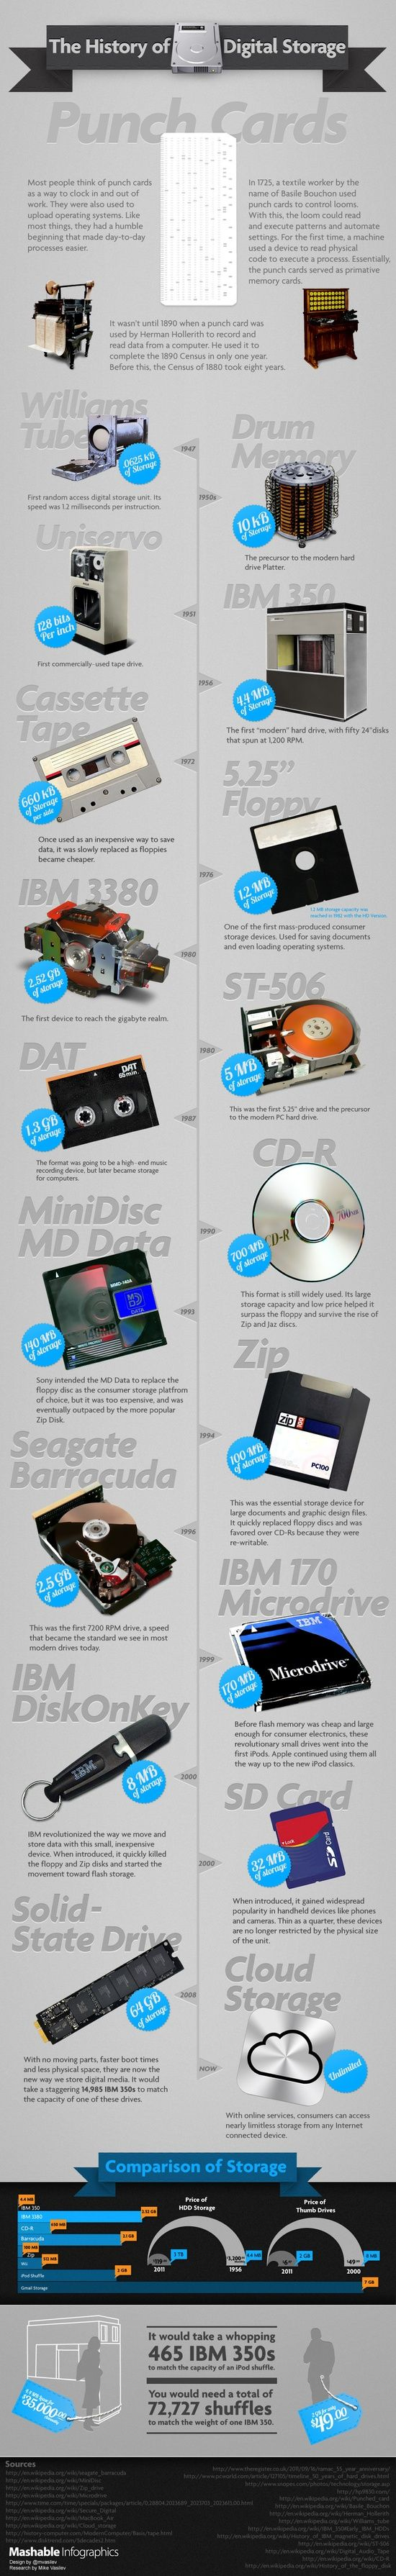 Everything you ever wanted to know about Digital Storage in one kickass #infographic RT because its THAT good.